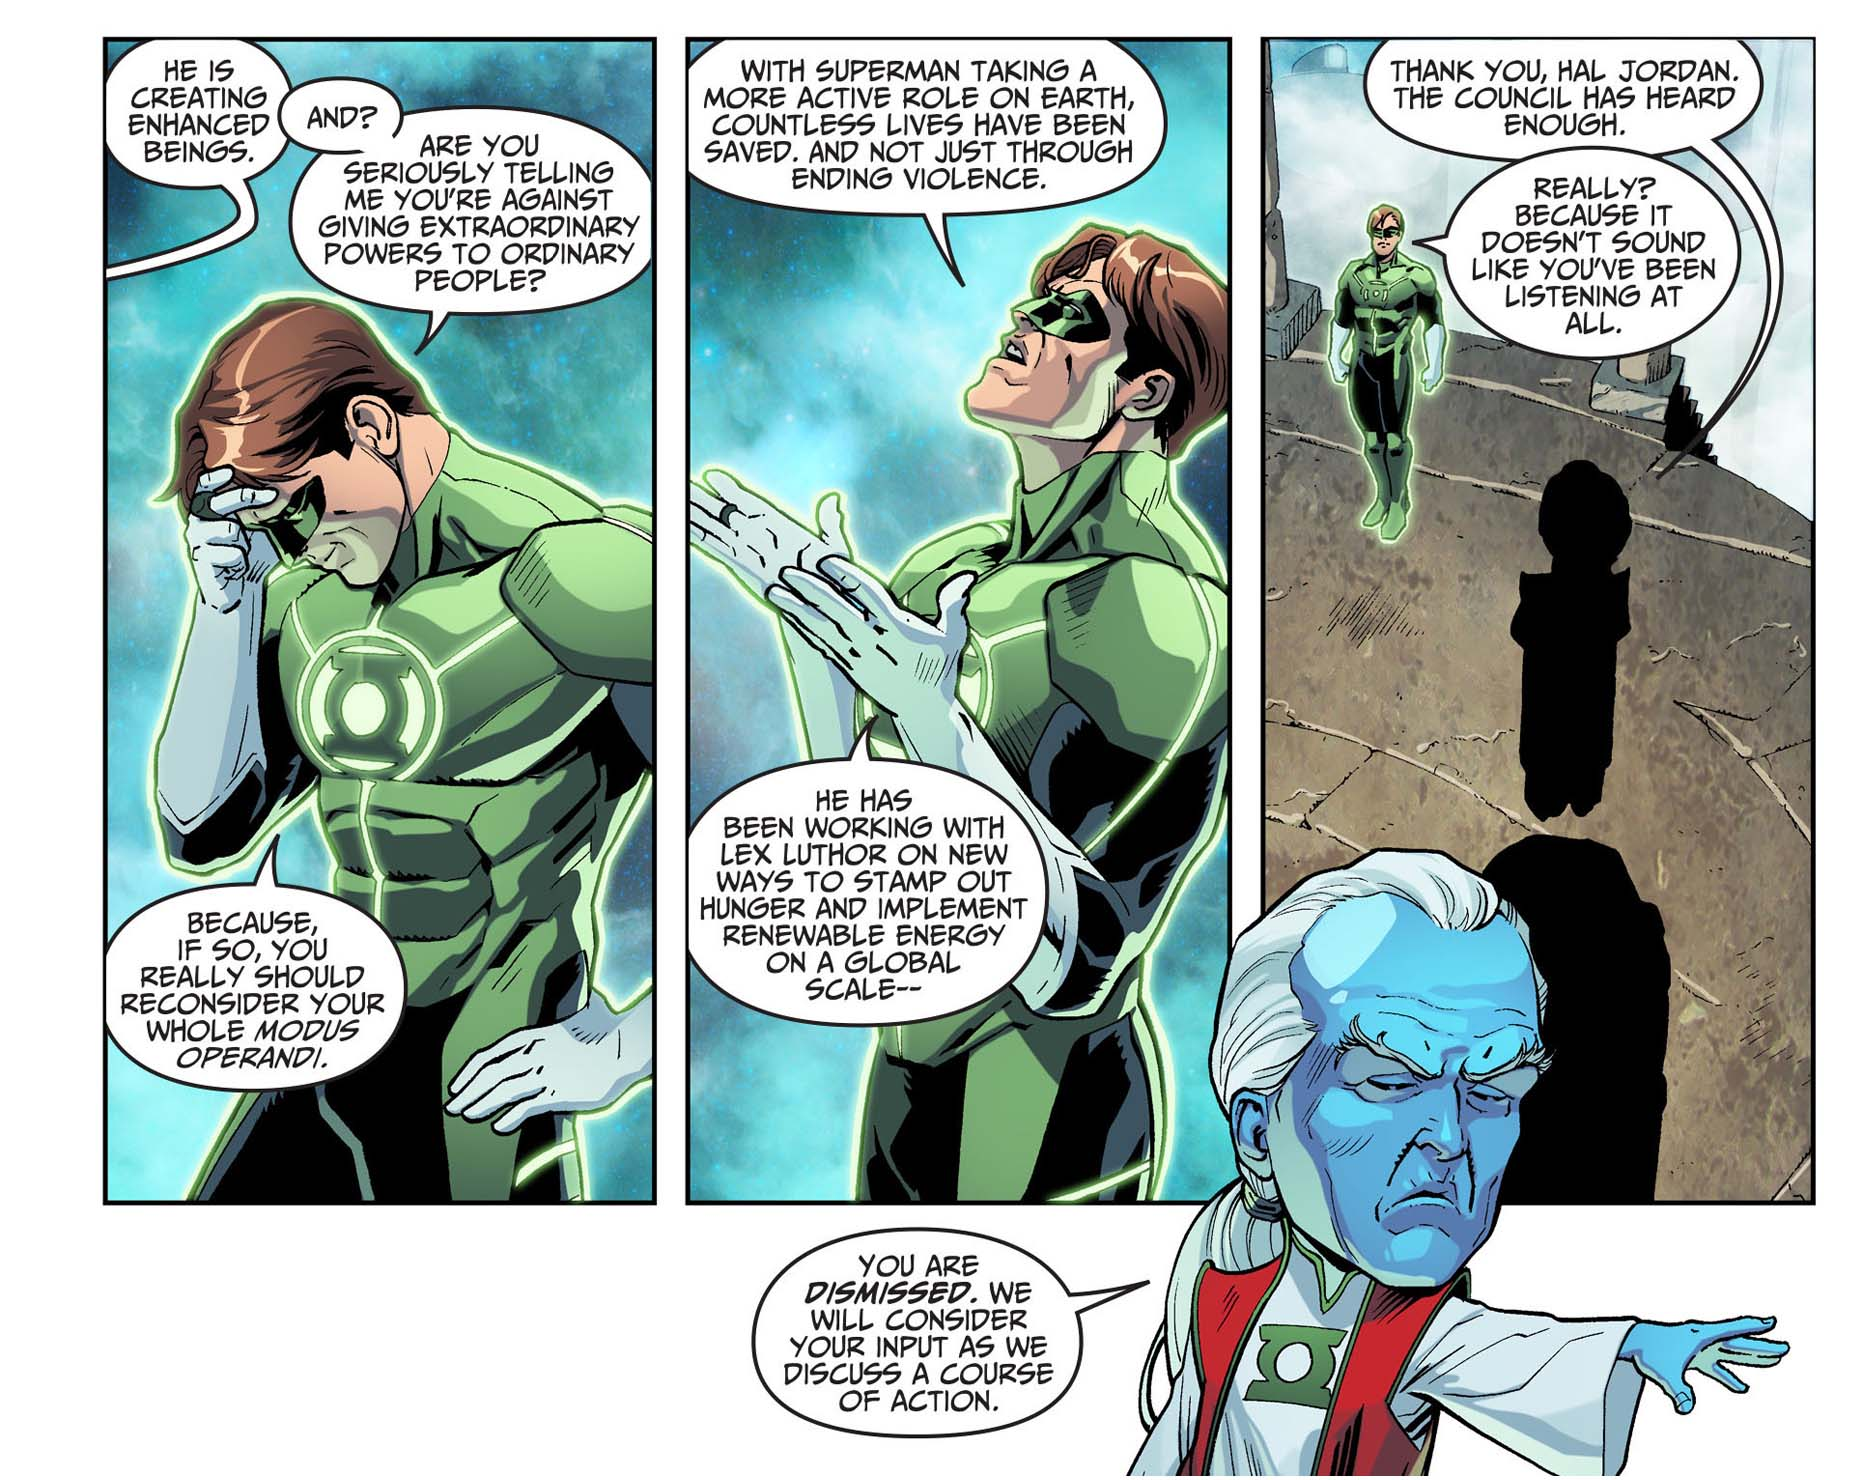 hal jordan defends superman from the guardians 3